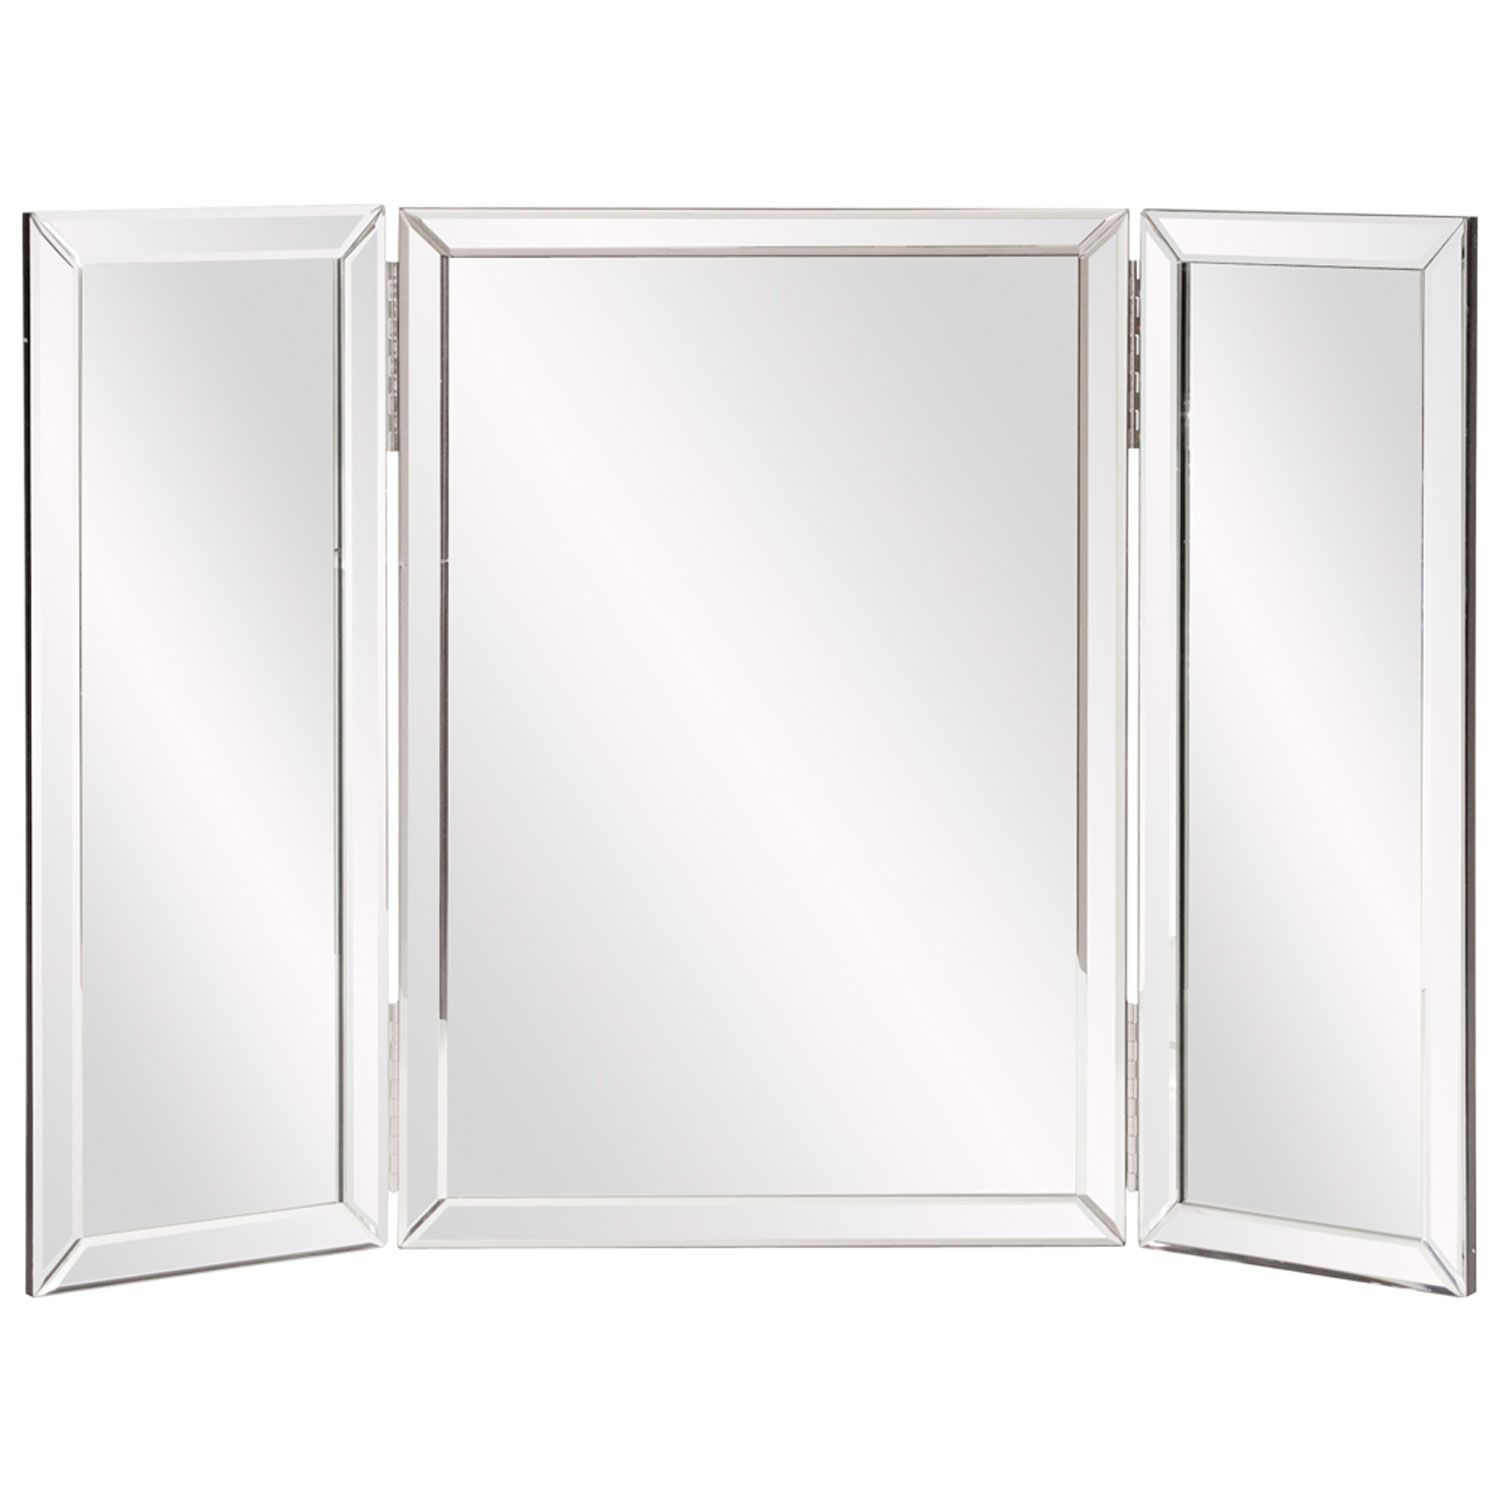 Mirrored Glass Vanity Tripoli Trifold Glass Tabletop Vanity Mirror Howard